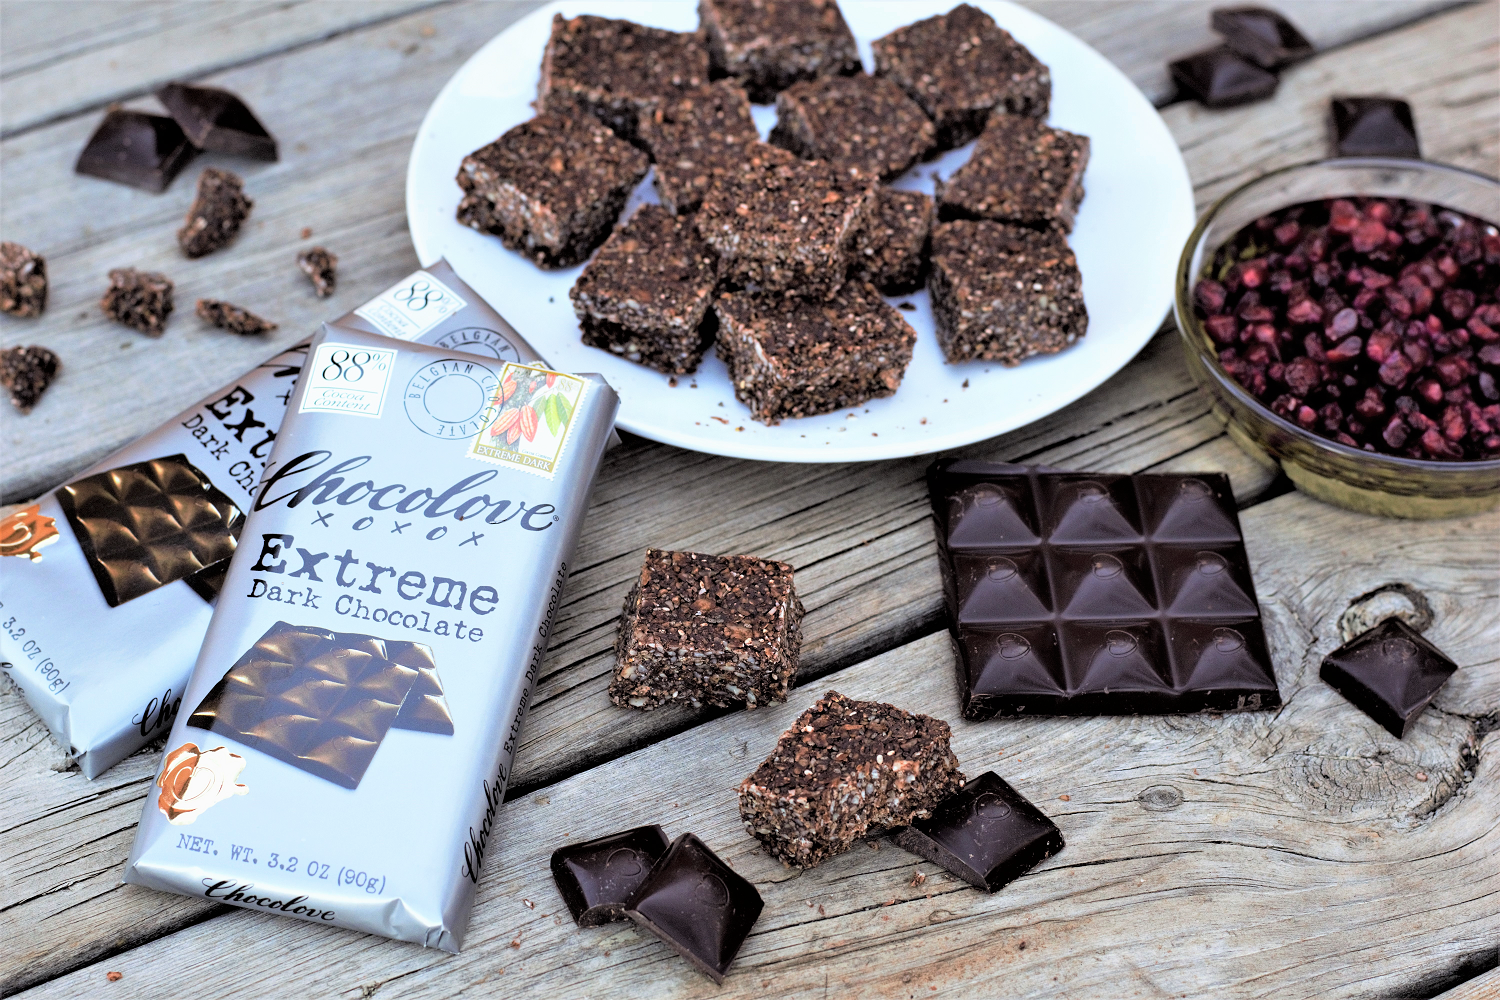 Healthy energy bites with 88% dark chocolate have just 100 calories & ZERO refined sugar for the perfect high-protein, low-carb, gluten-free, healthy-ish indulgence.